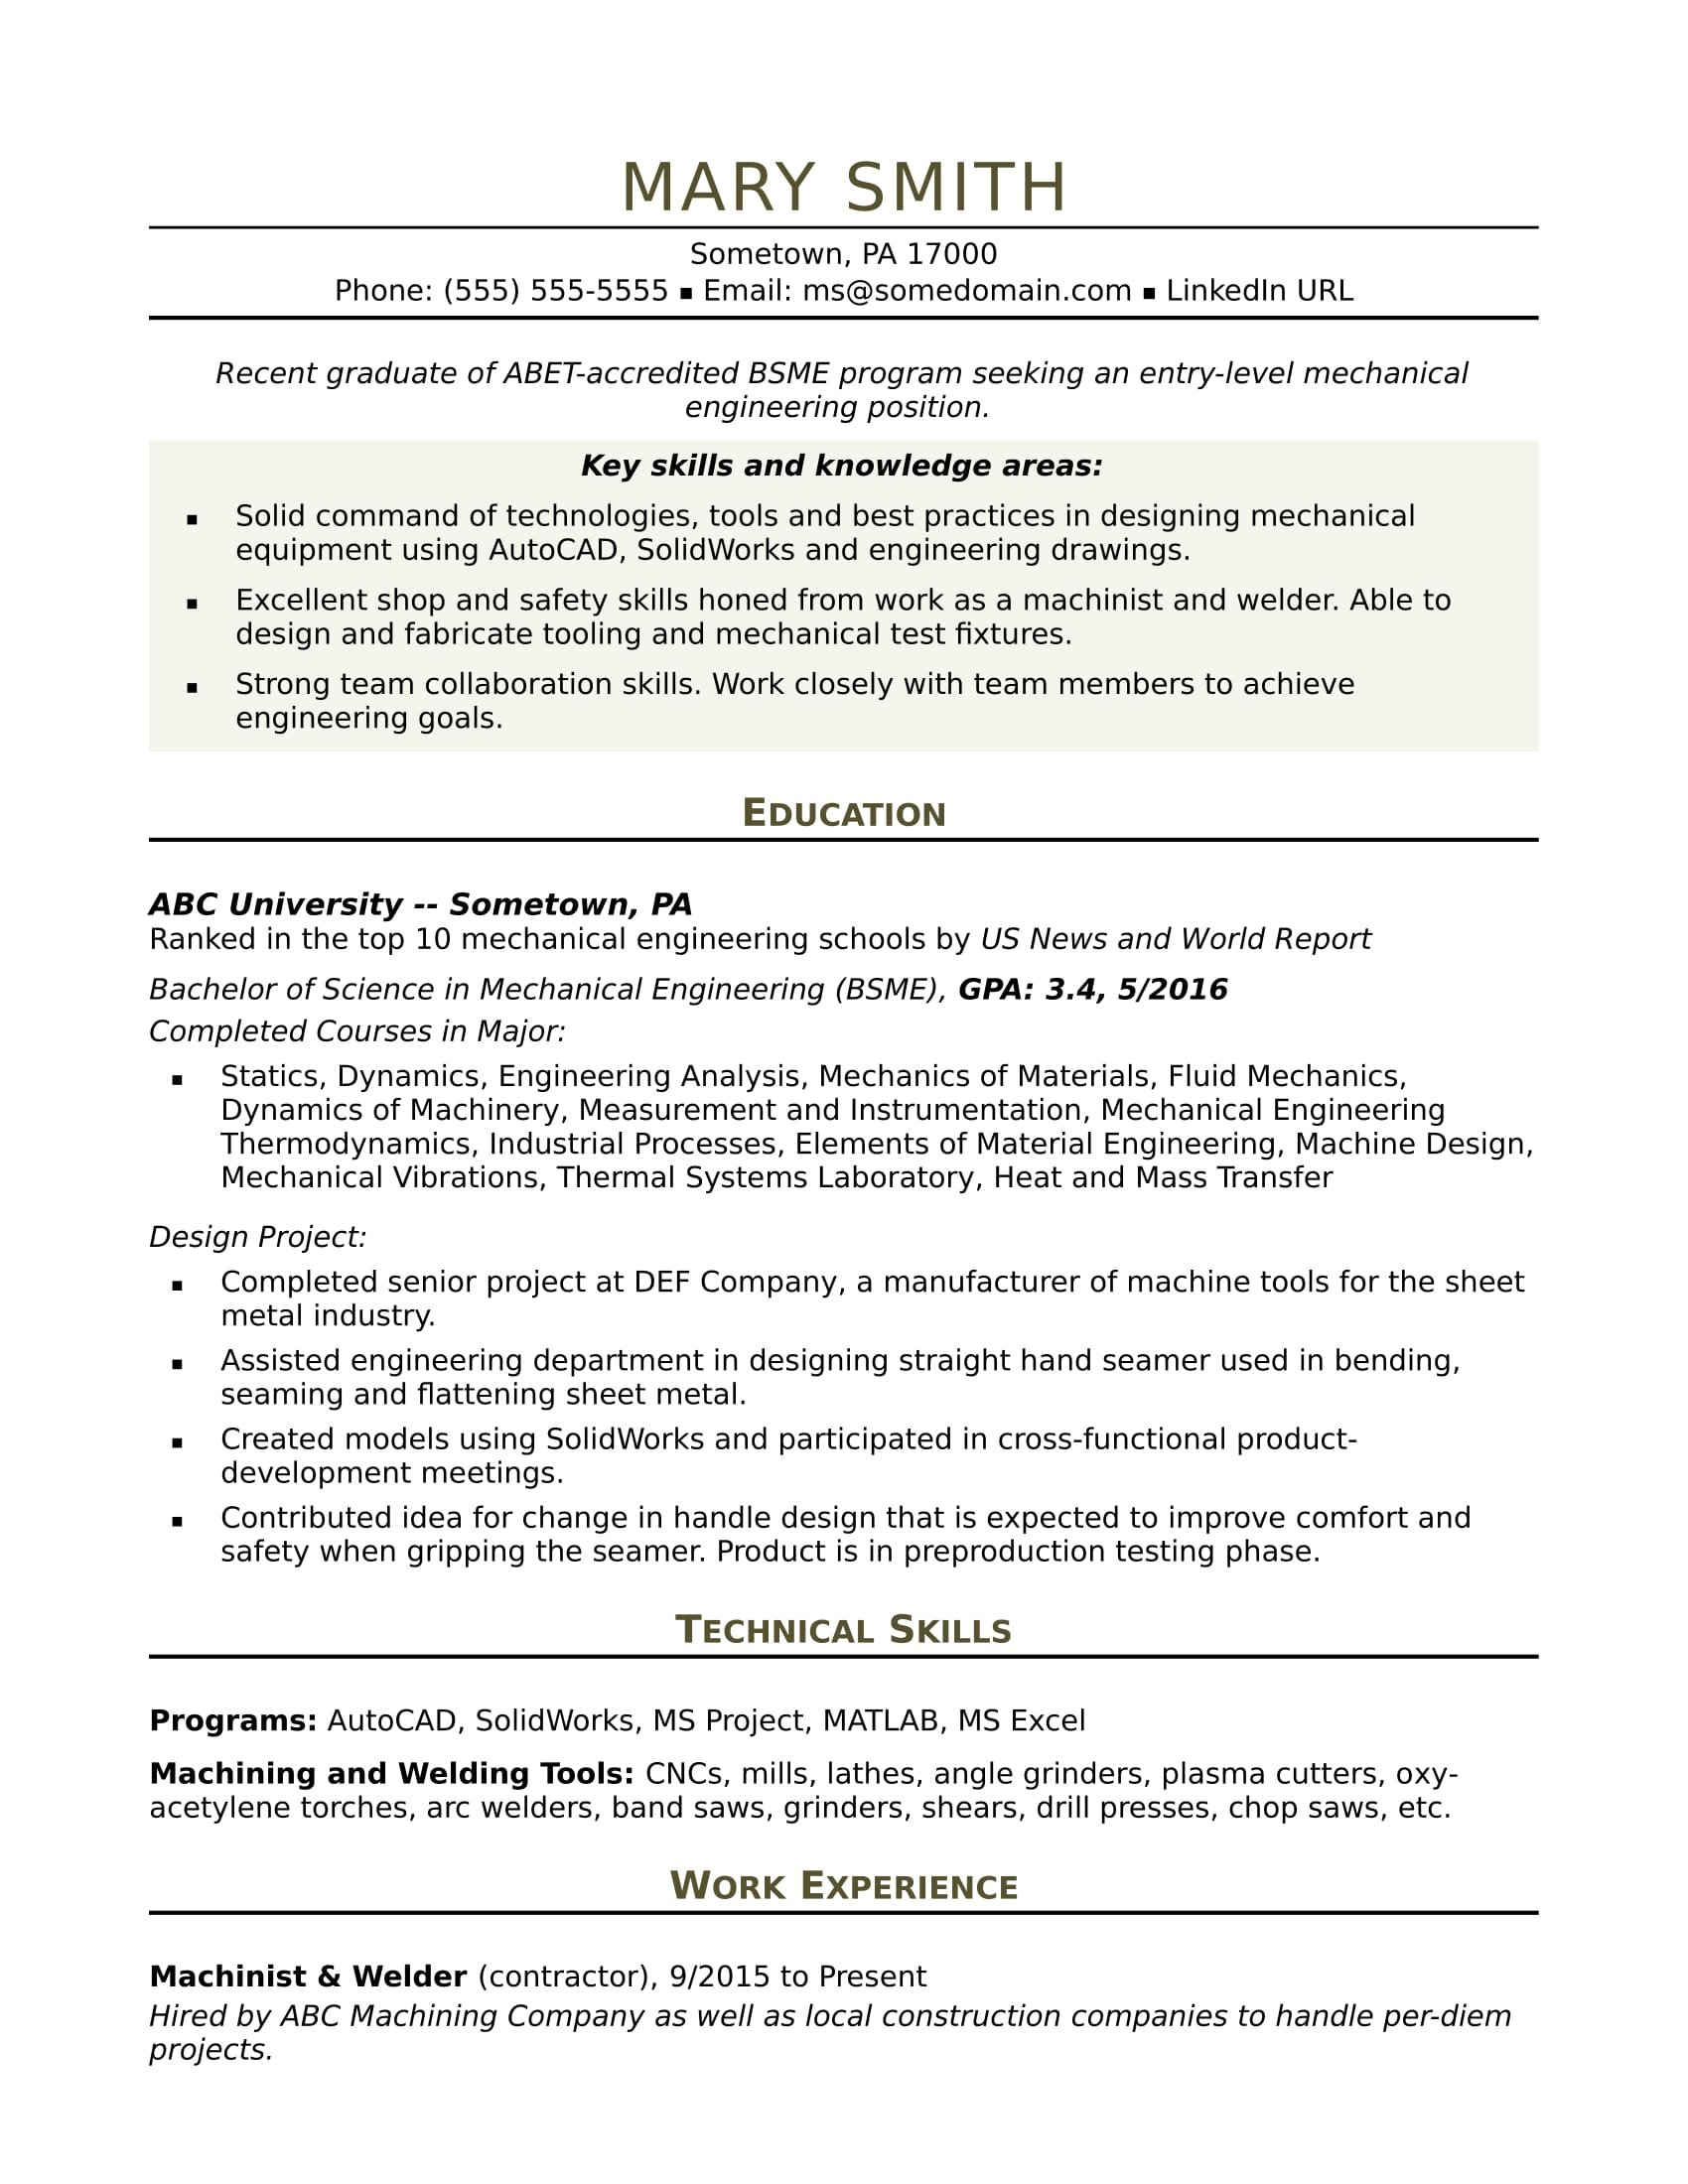 sample resume for an entry level mechanical engineer monster engineering examples Resume Engineering Resume Examples